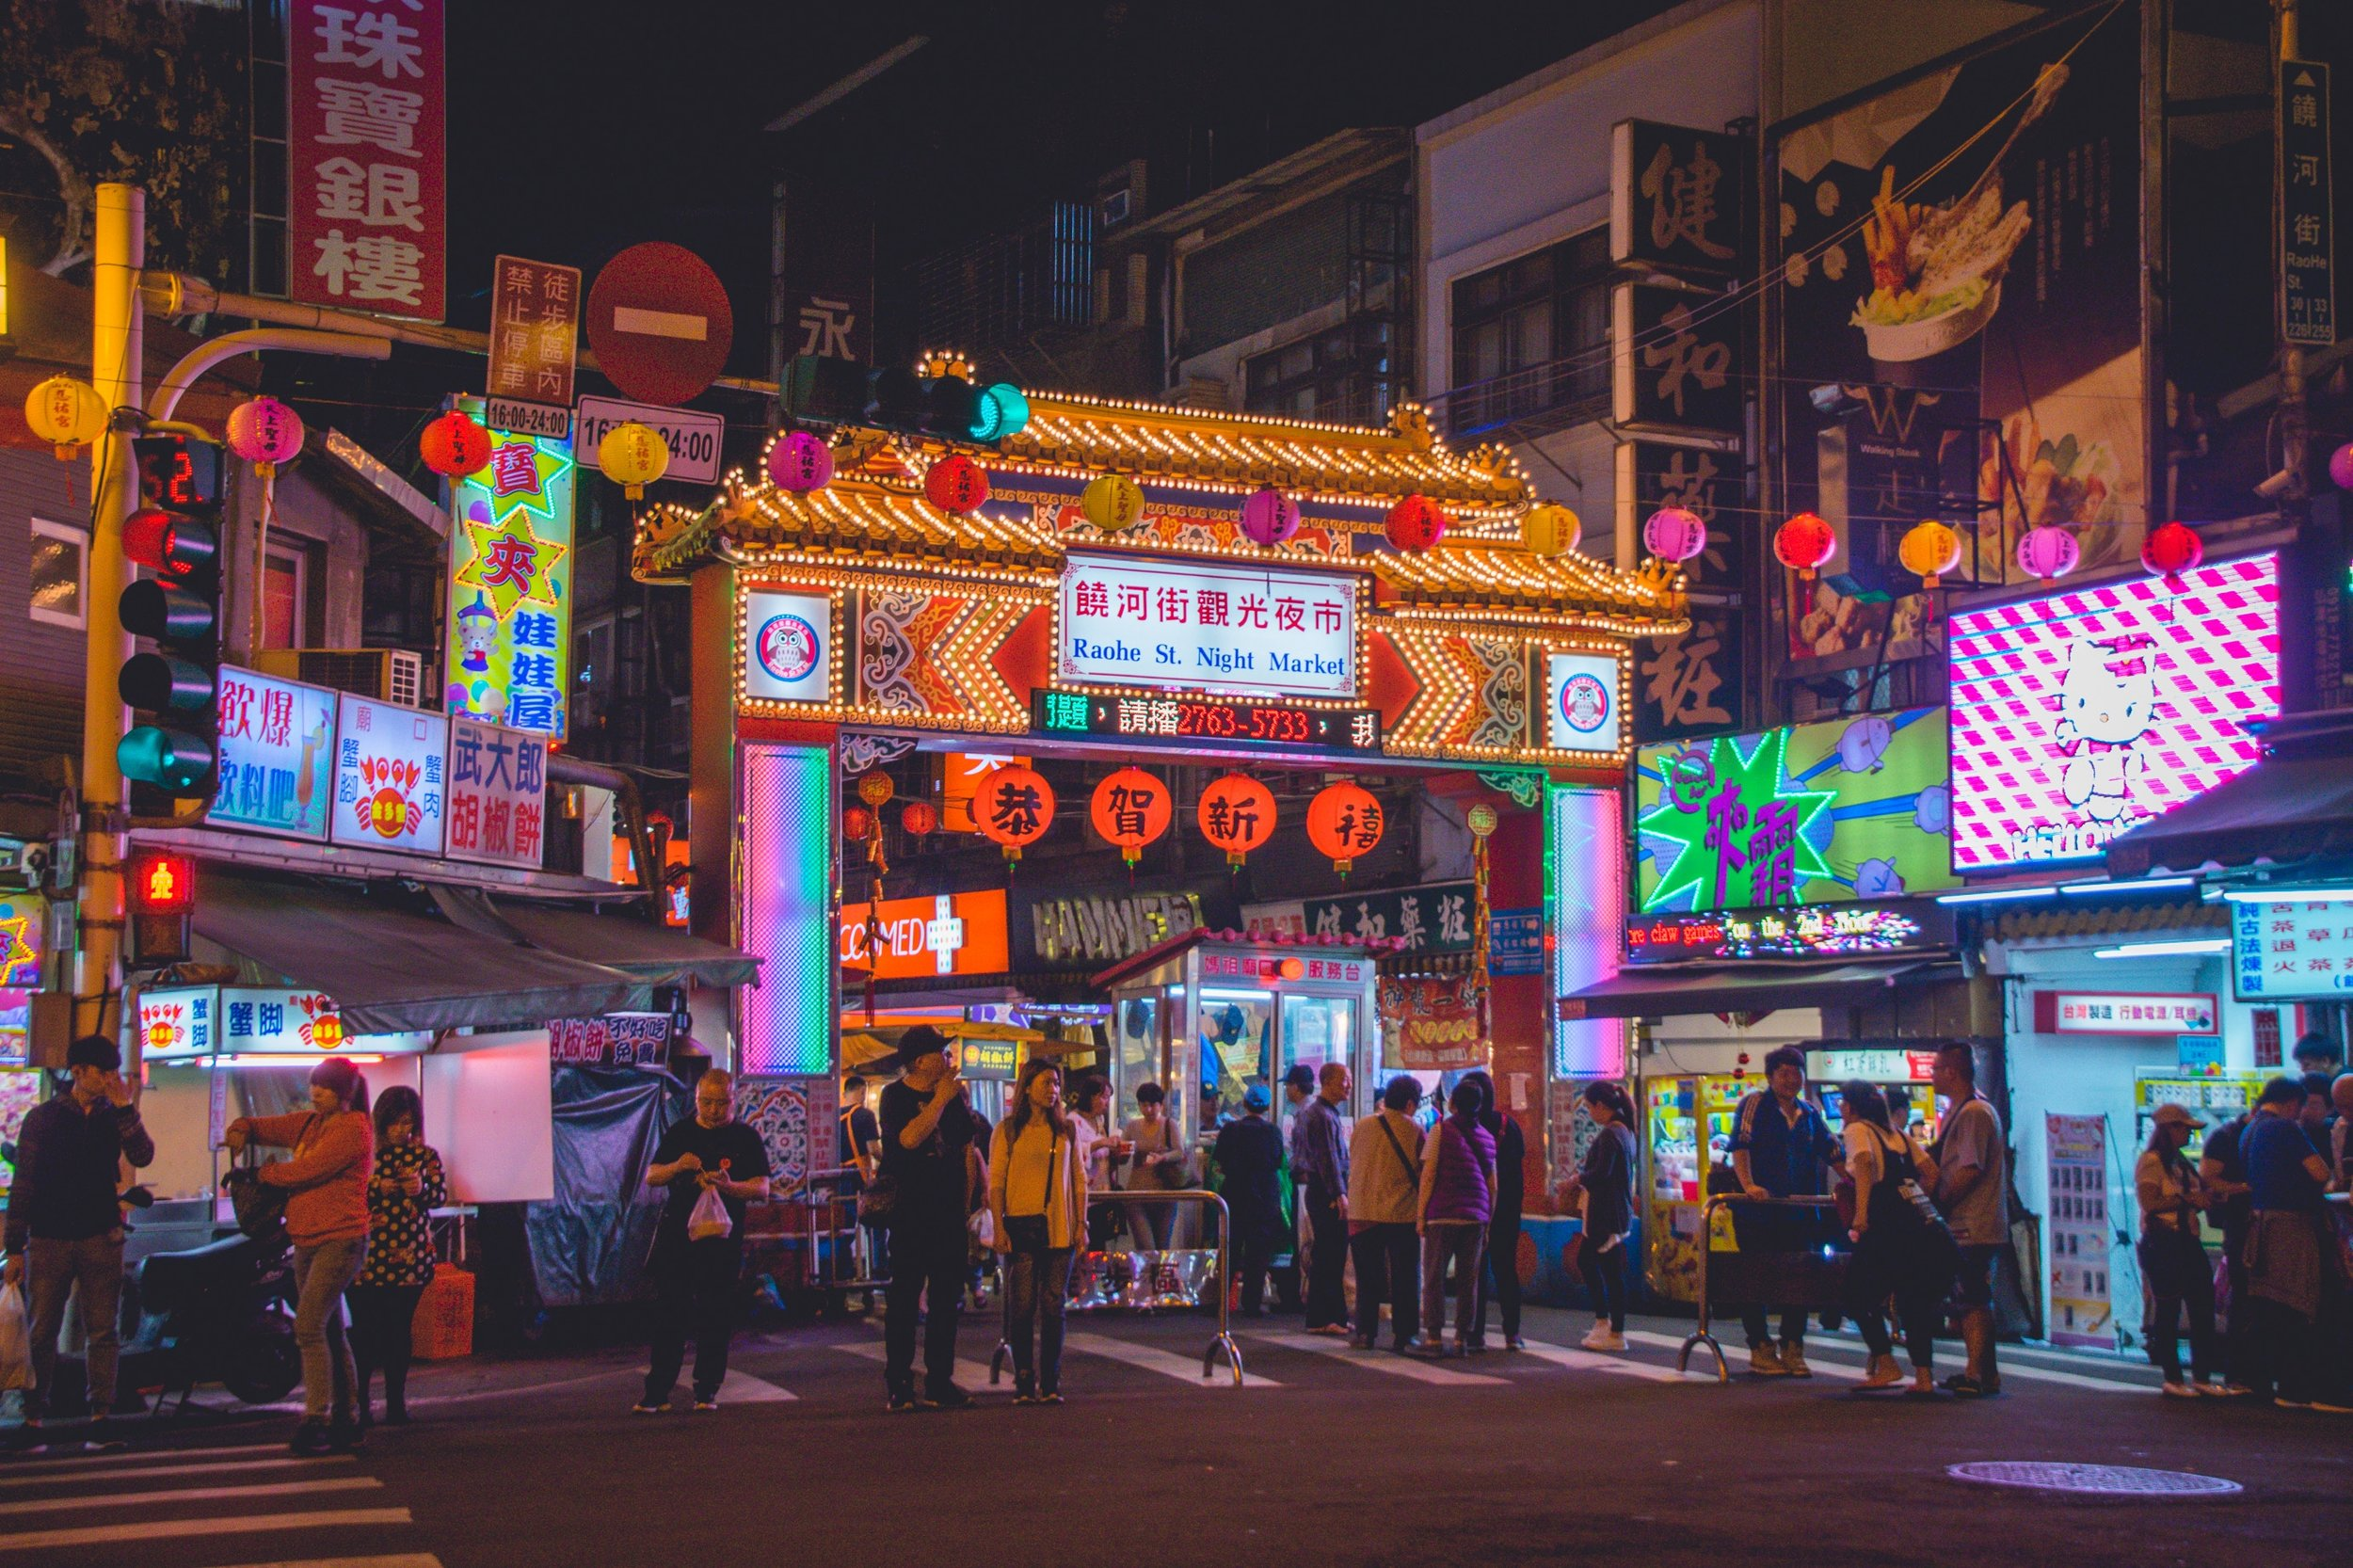 Raohe-Night-Market-Taiwan-Itinerary-10-Days.jpg